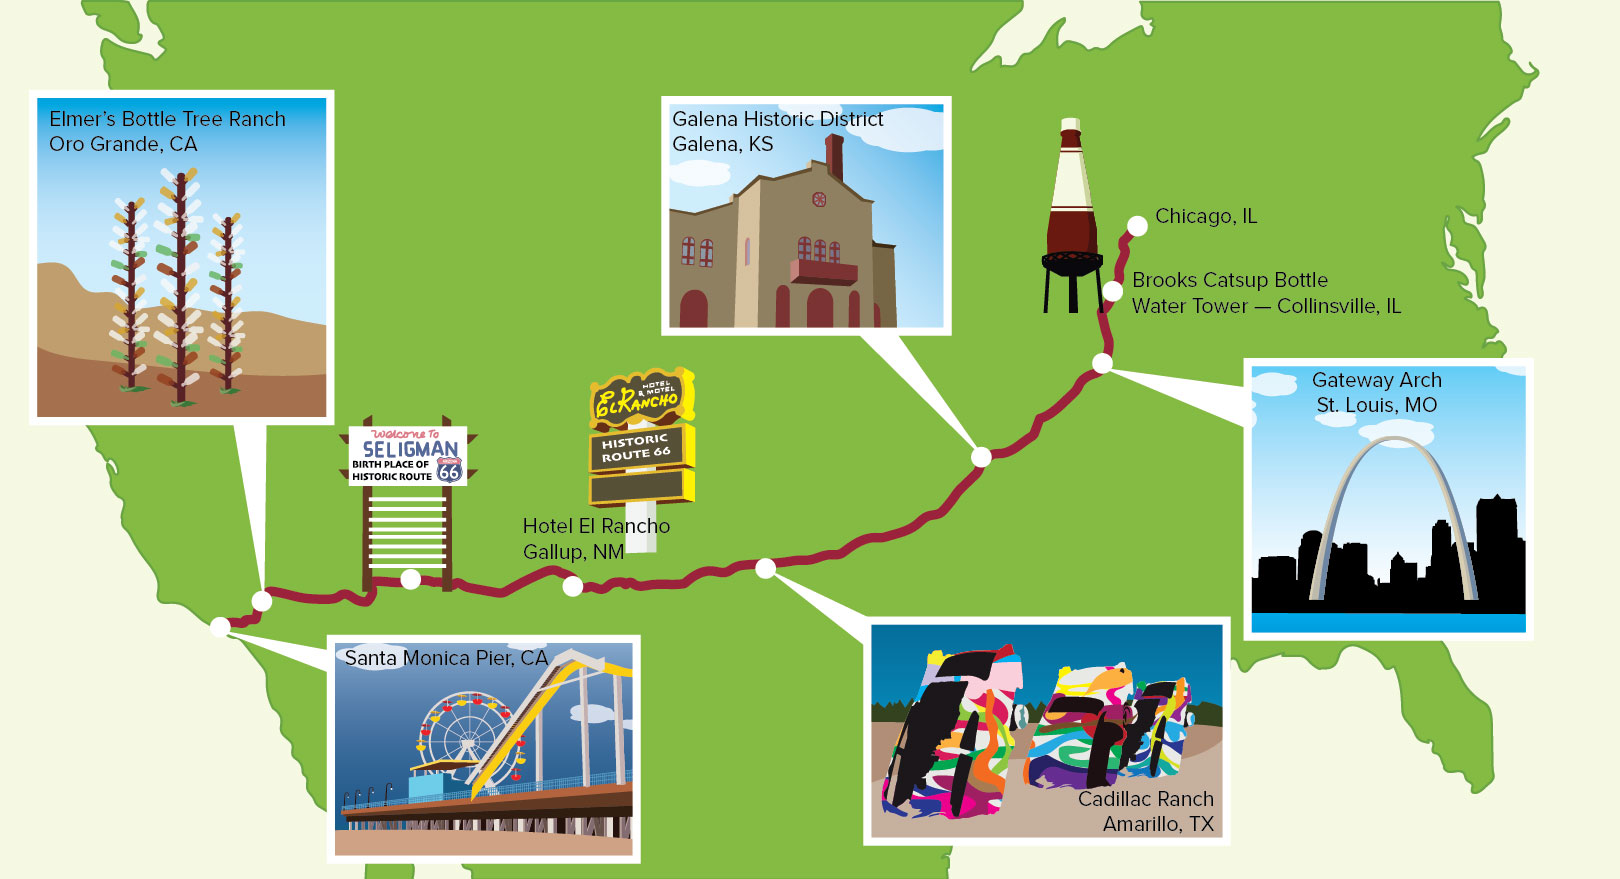 ymt-blog-best-attractions-alon-historic-route-66-map